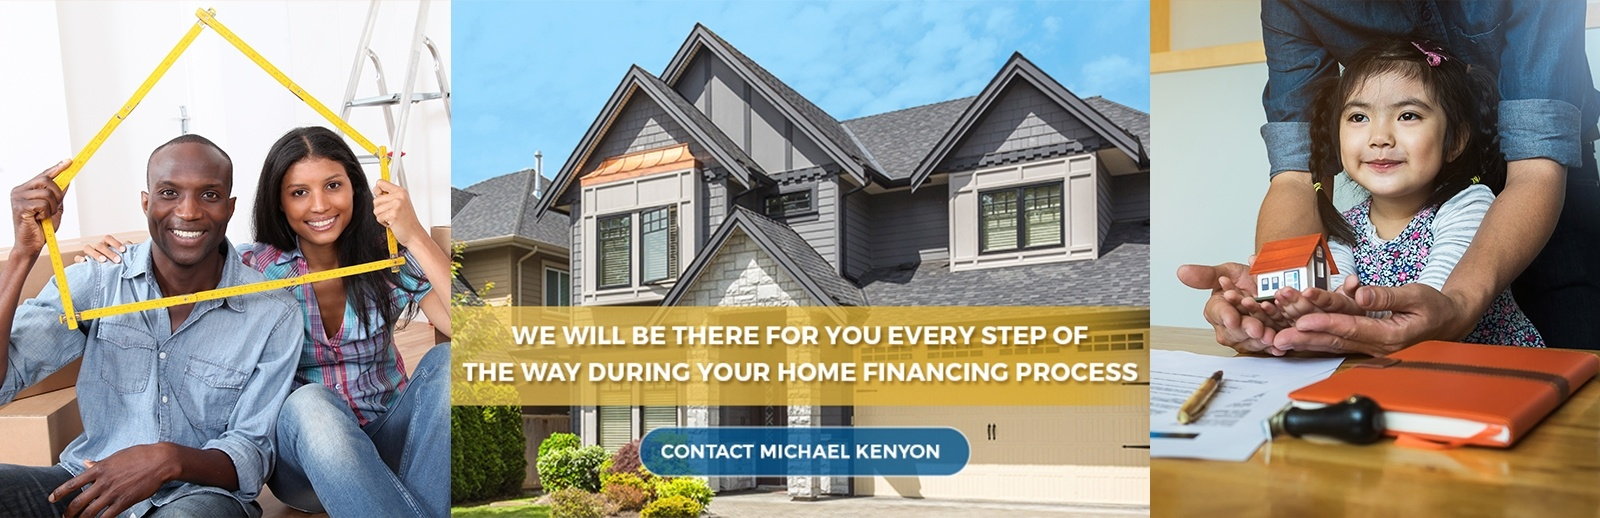 construction mortgage McLean